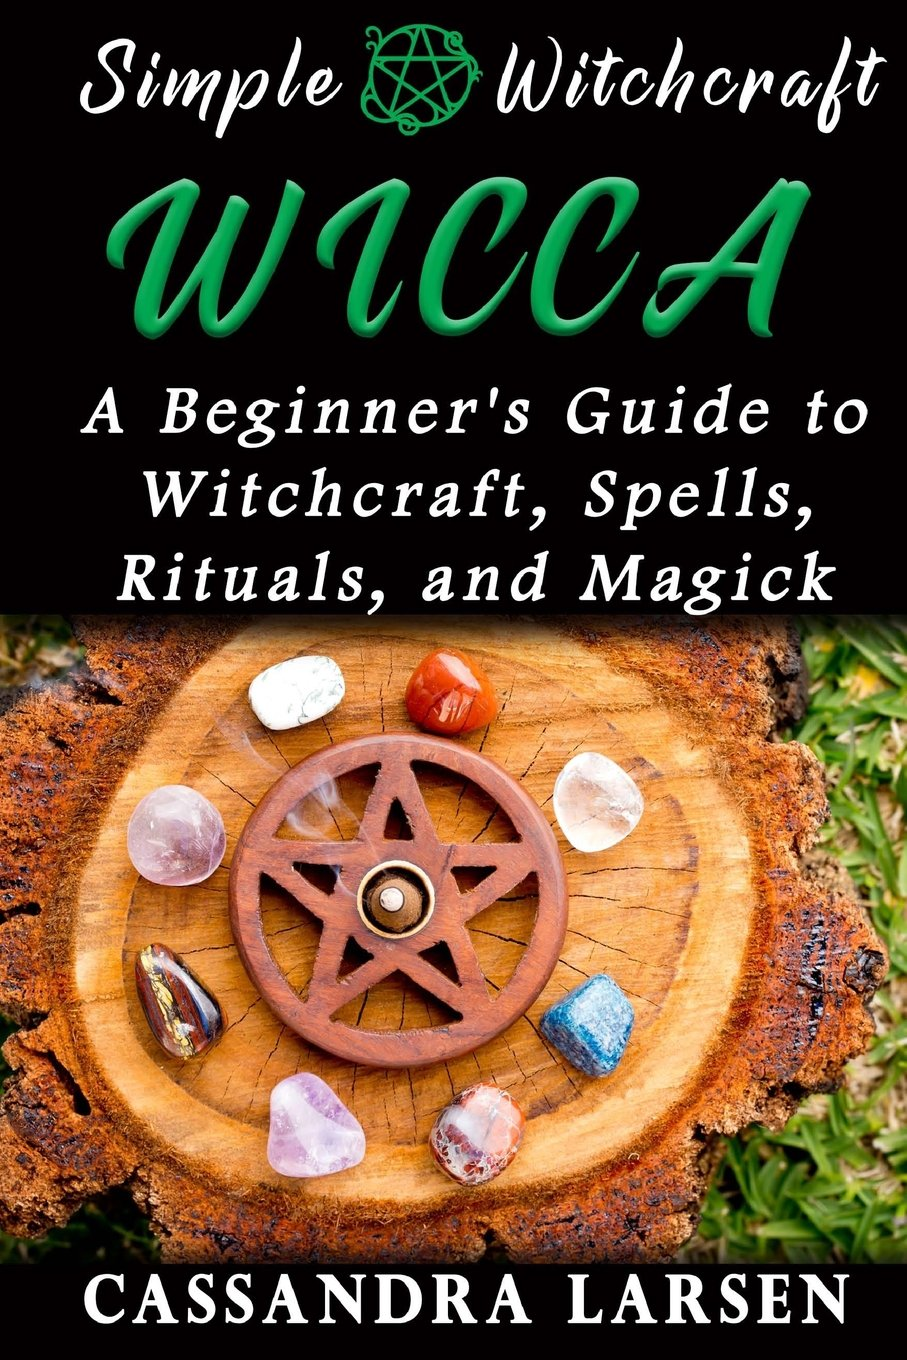 Wicca: A Beginner's Guide to Witchcraft, Spells, Rituals, and Magick (Simple Witchcraft) (Volume 1) pdf